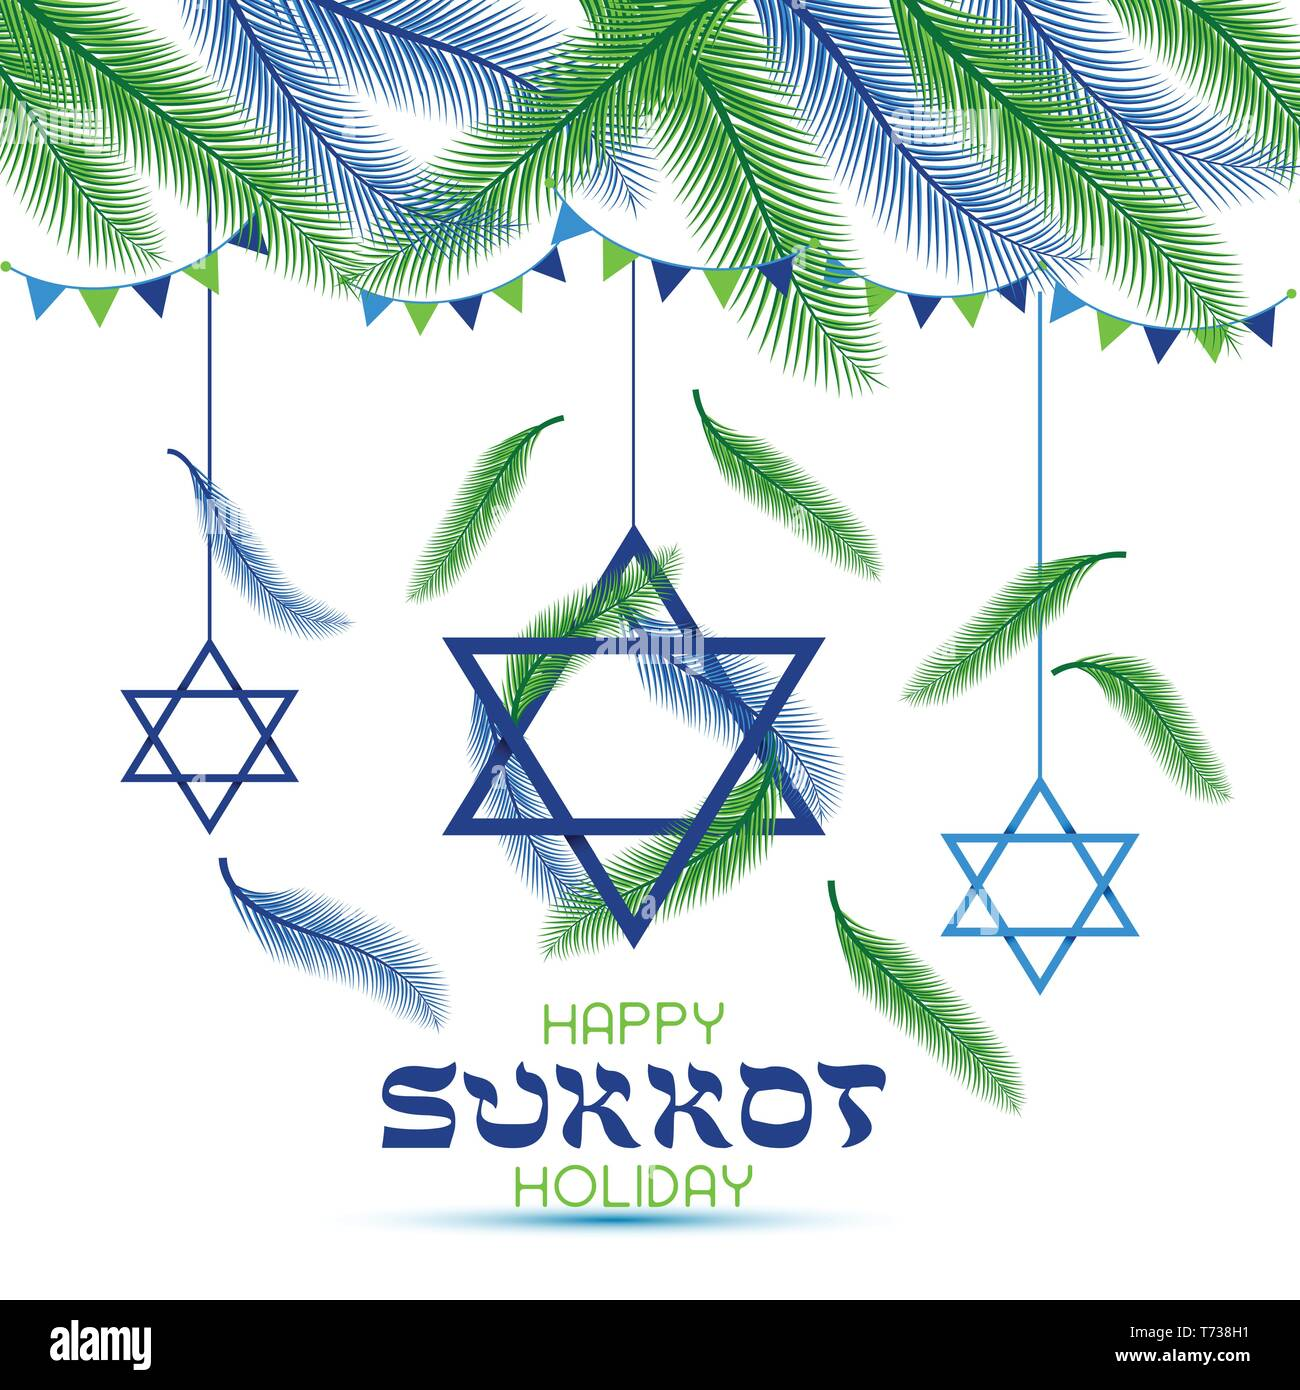 Happy Sukkot Holiday. Jewish Holiday Sukkot. Vector Jewish new year. Autumn Fest. Palm tree leaves frame. - Stock Vector